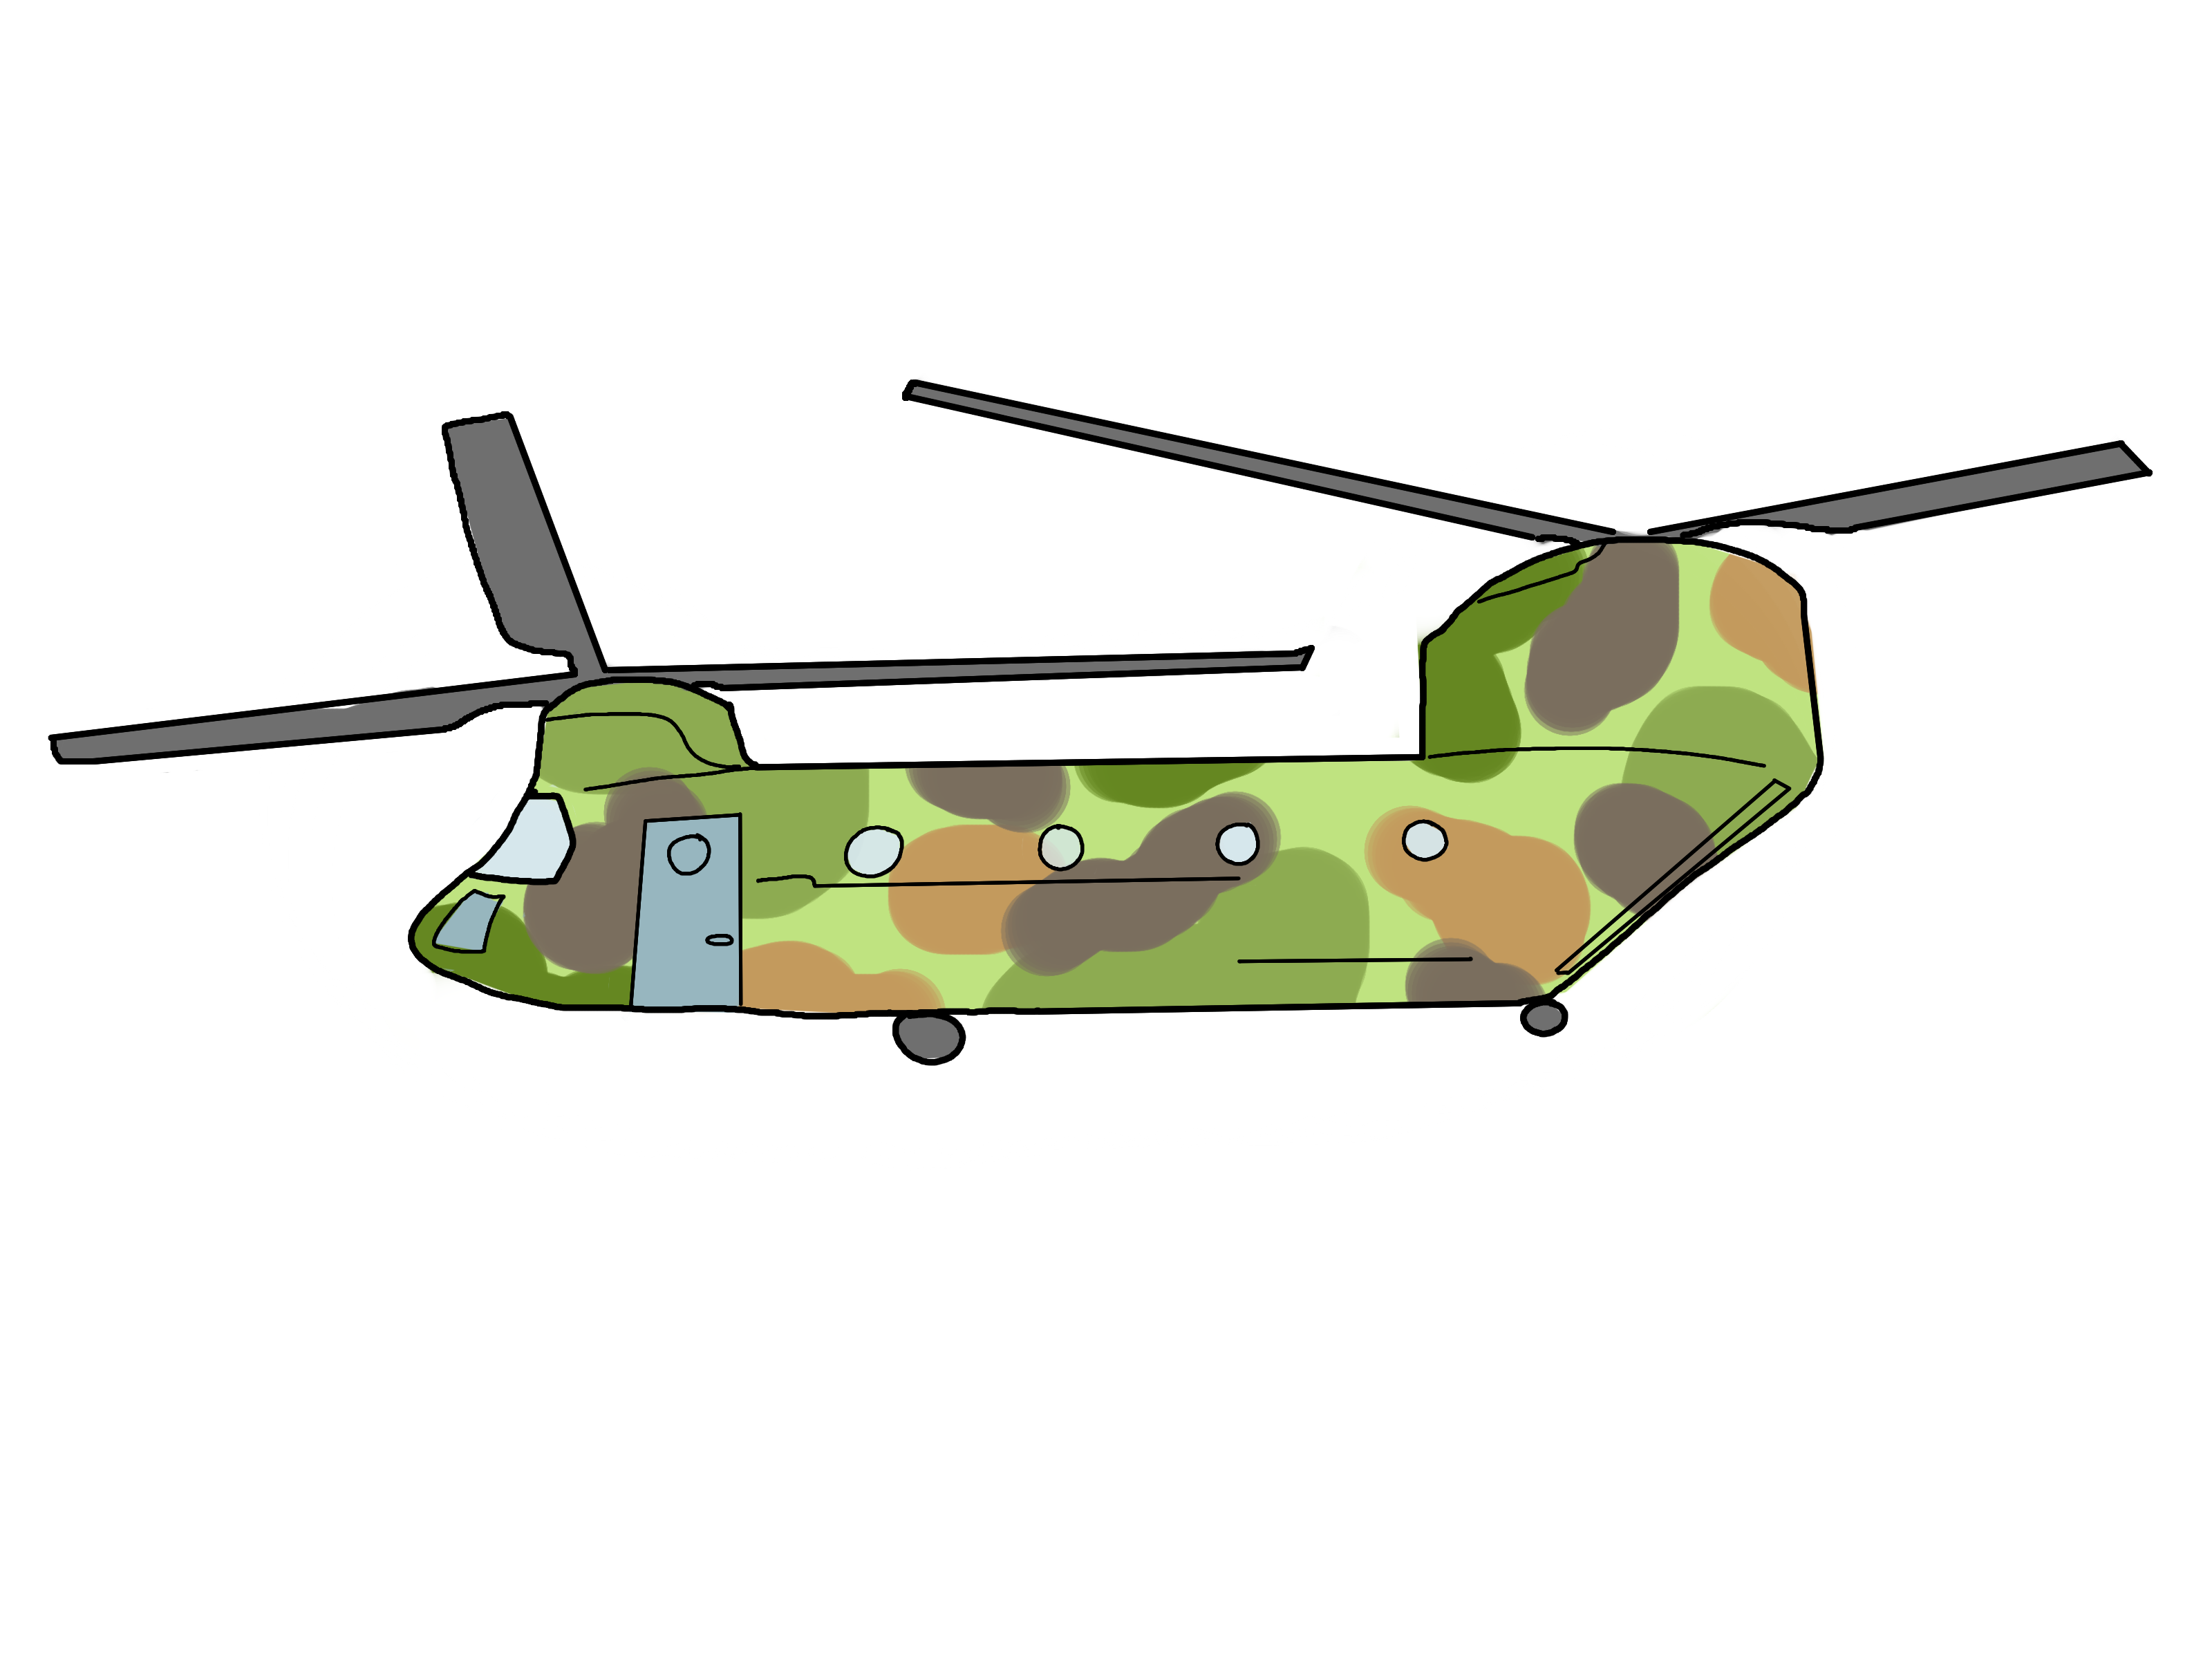 Drawn helicopter How Draw wikiHow to (with